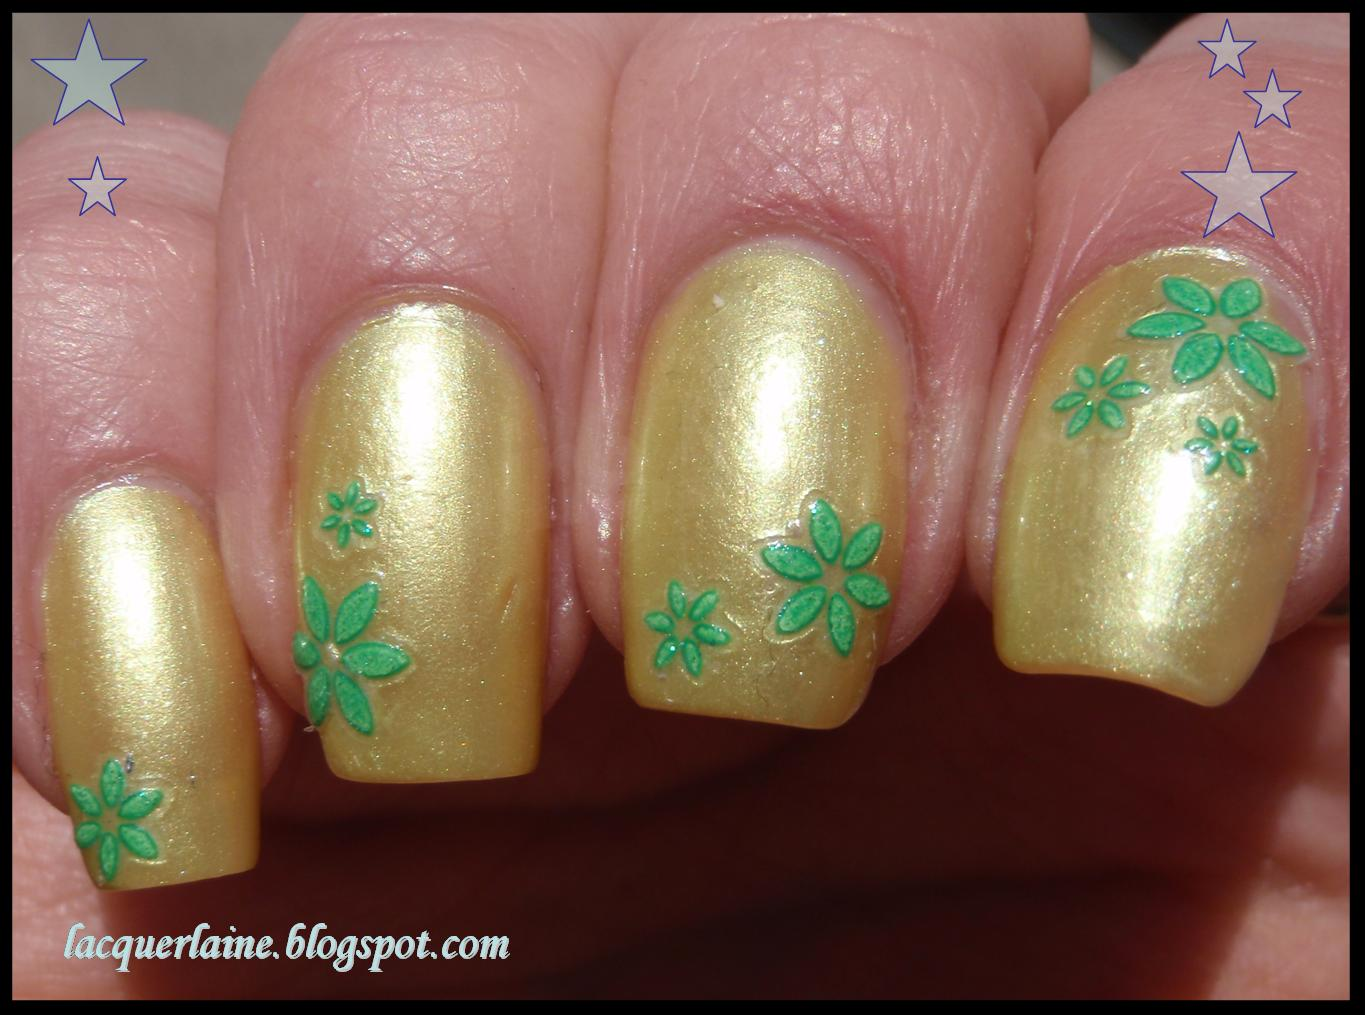 Lacquer Laine: Nailene Bedazzle Nail Decals